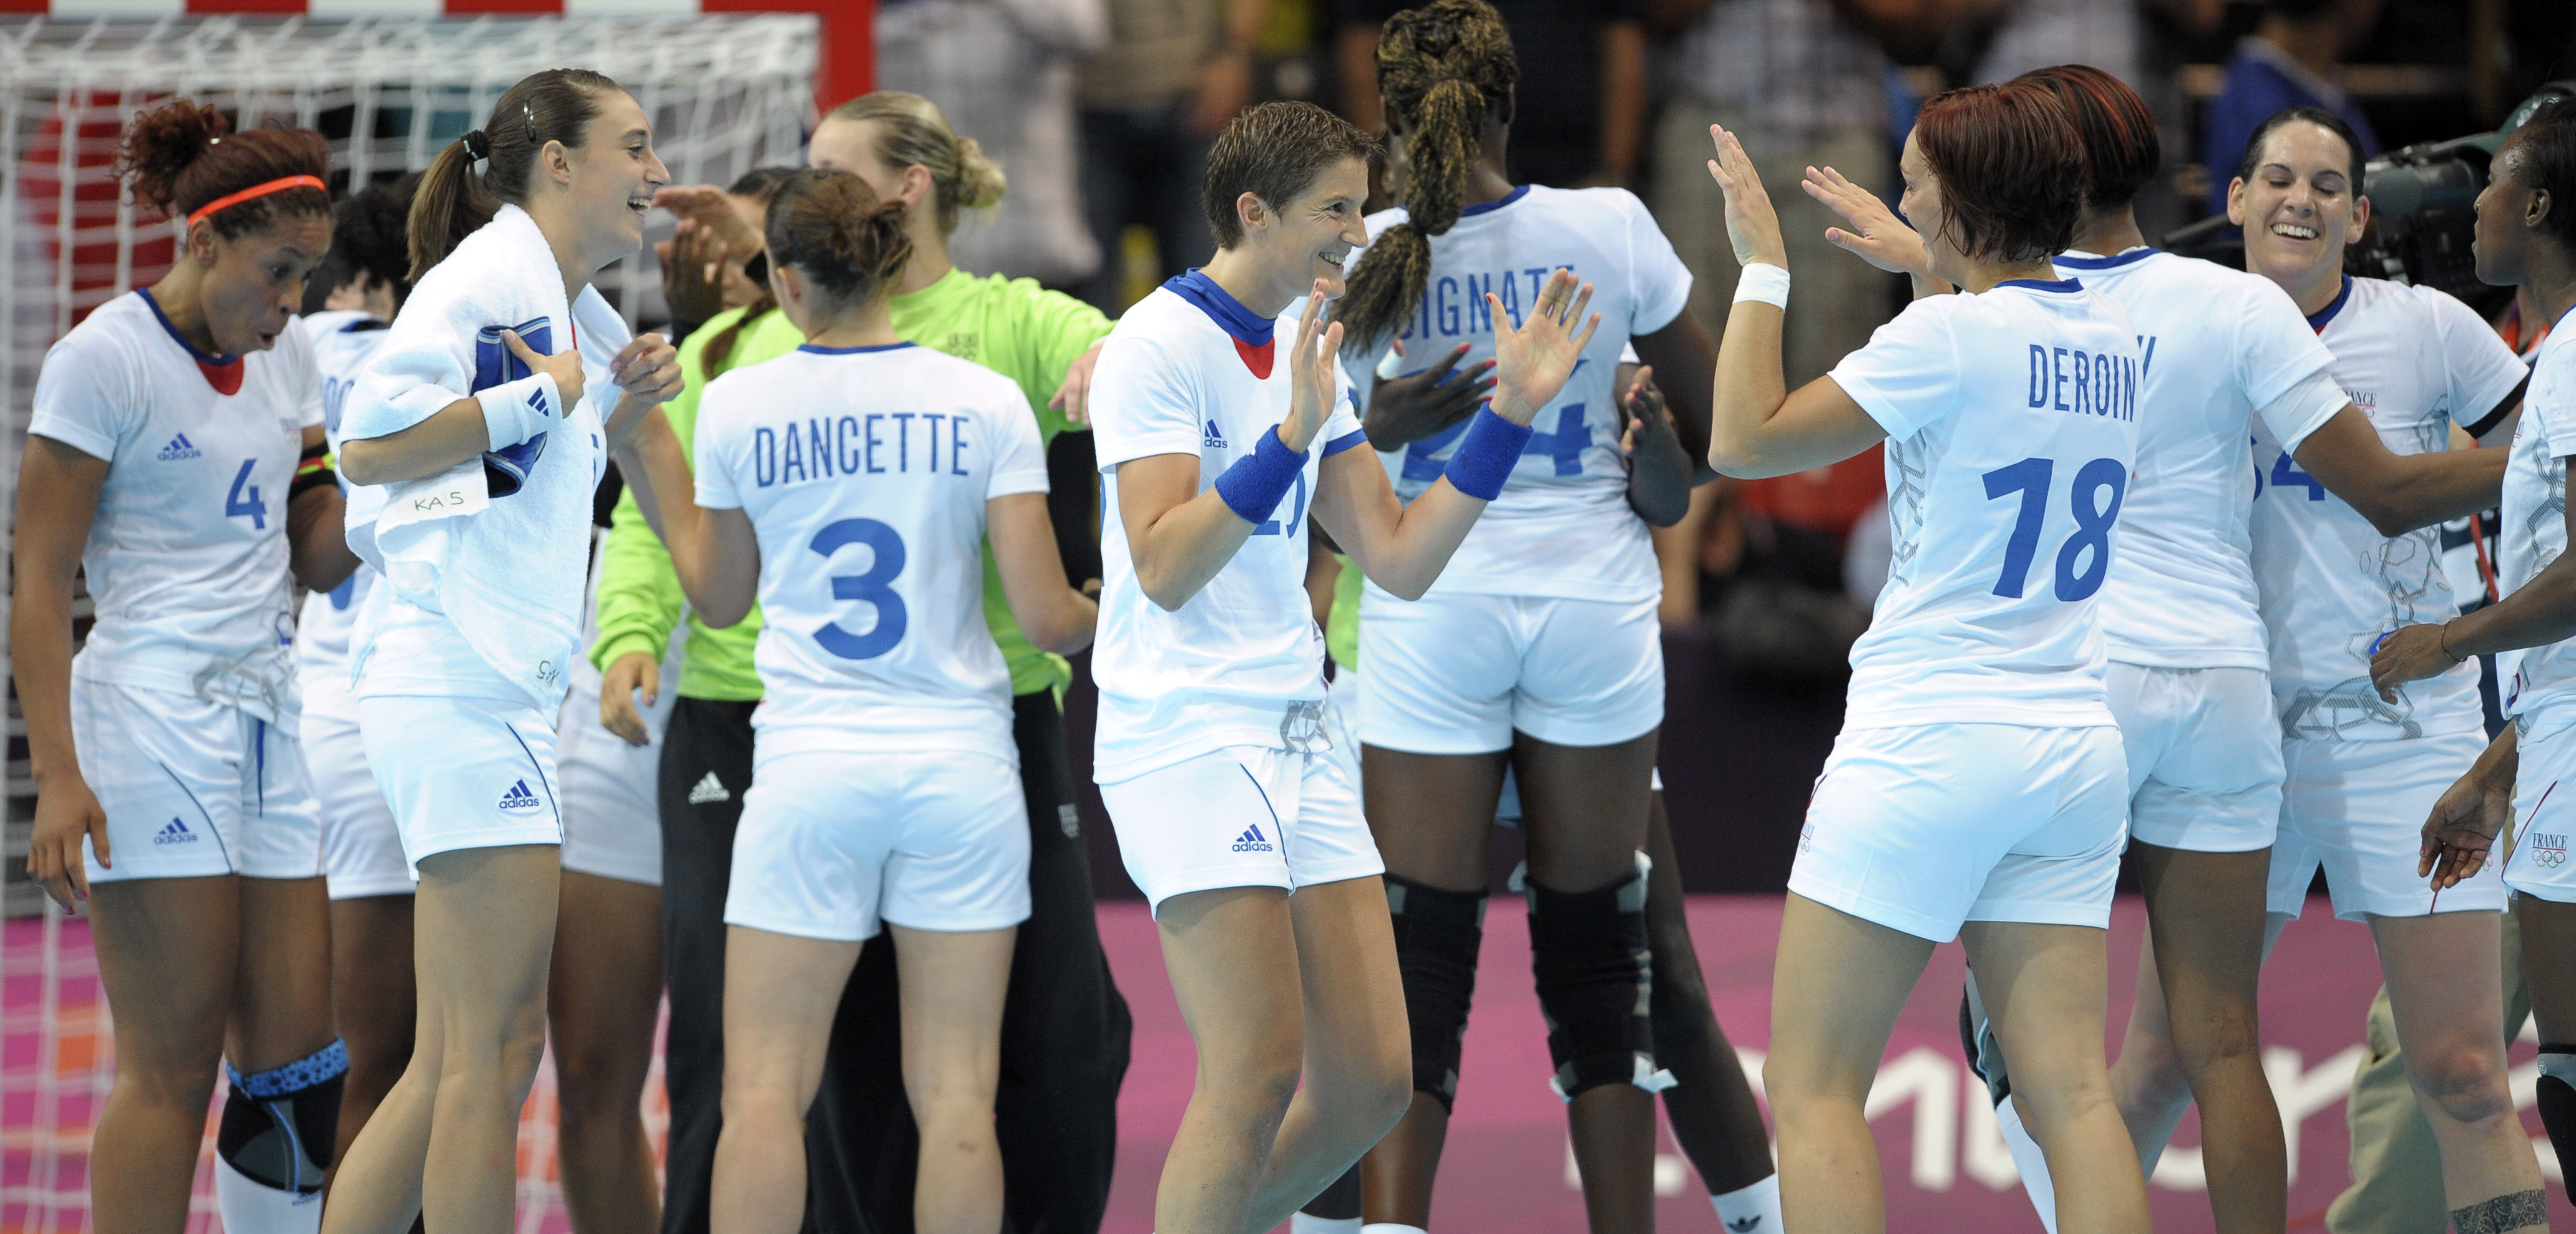 Handball France vs Montenegro en direct live streaming sur Sport Plus